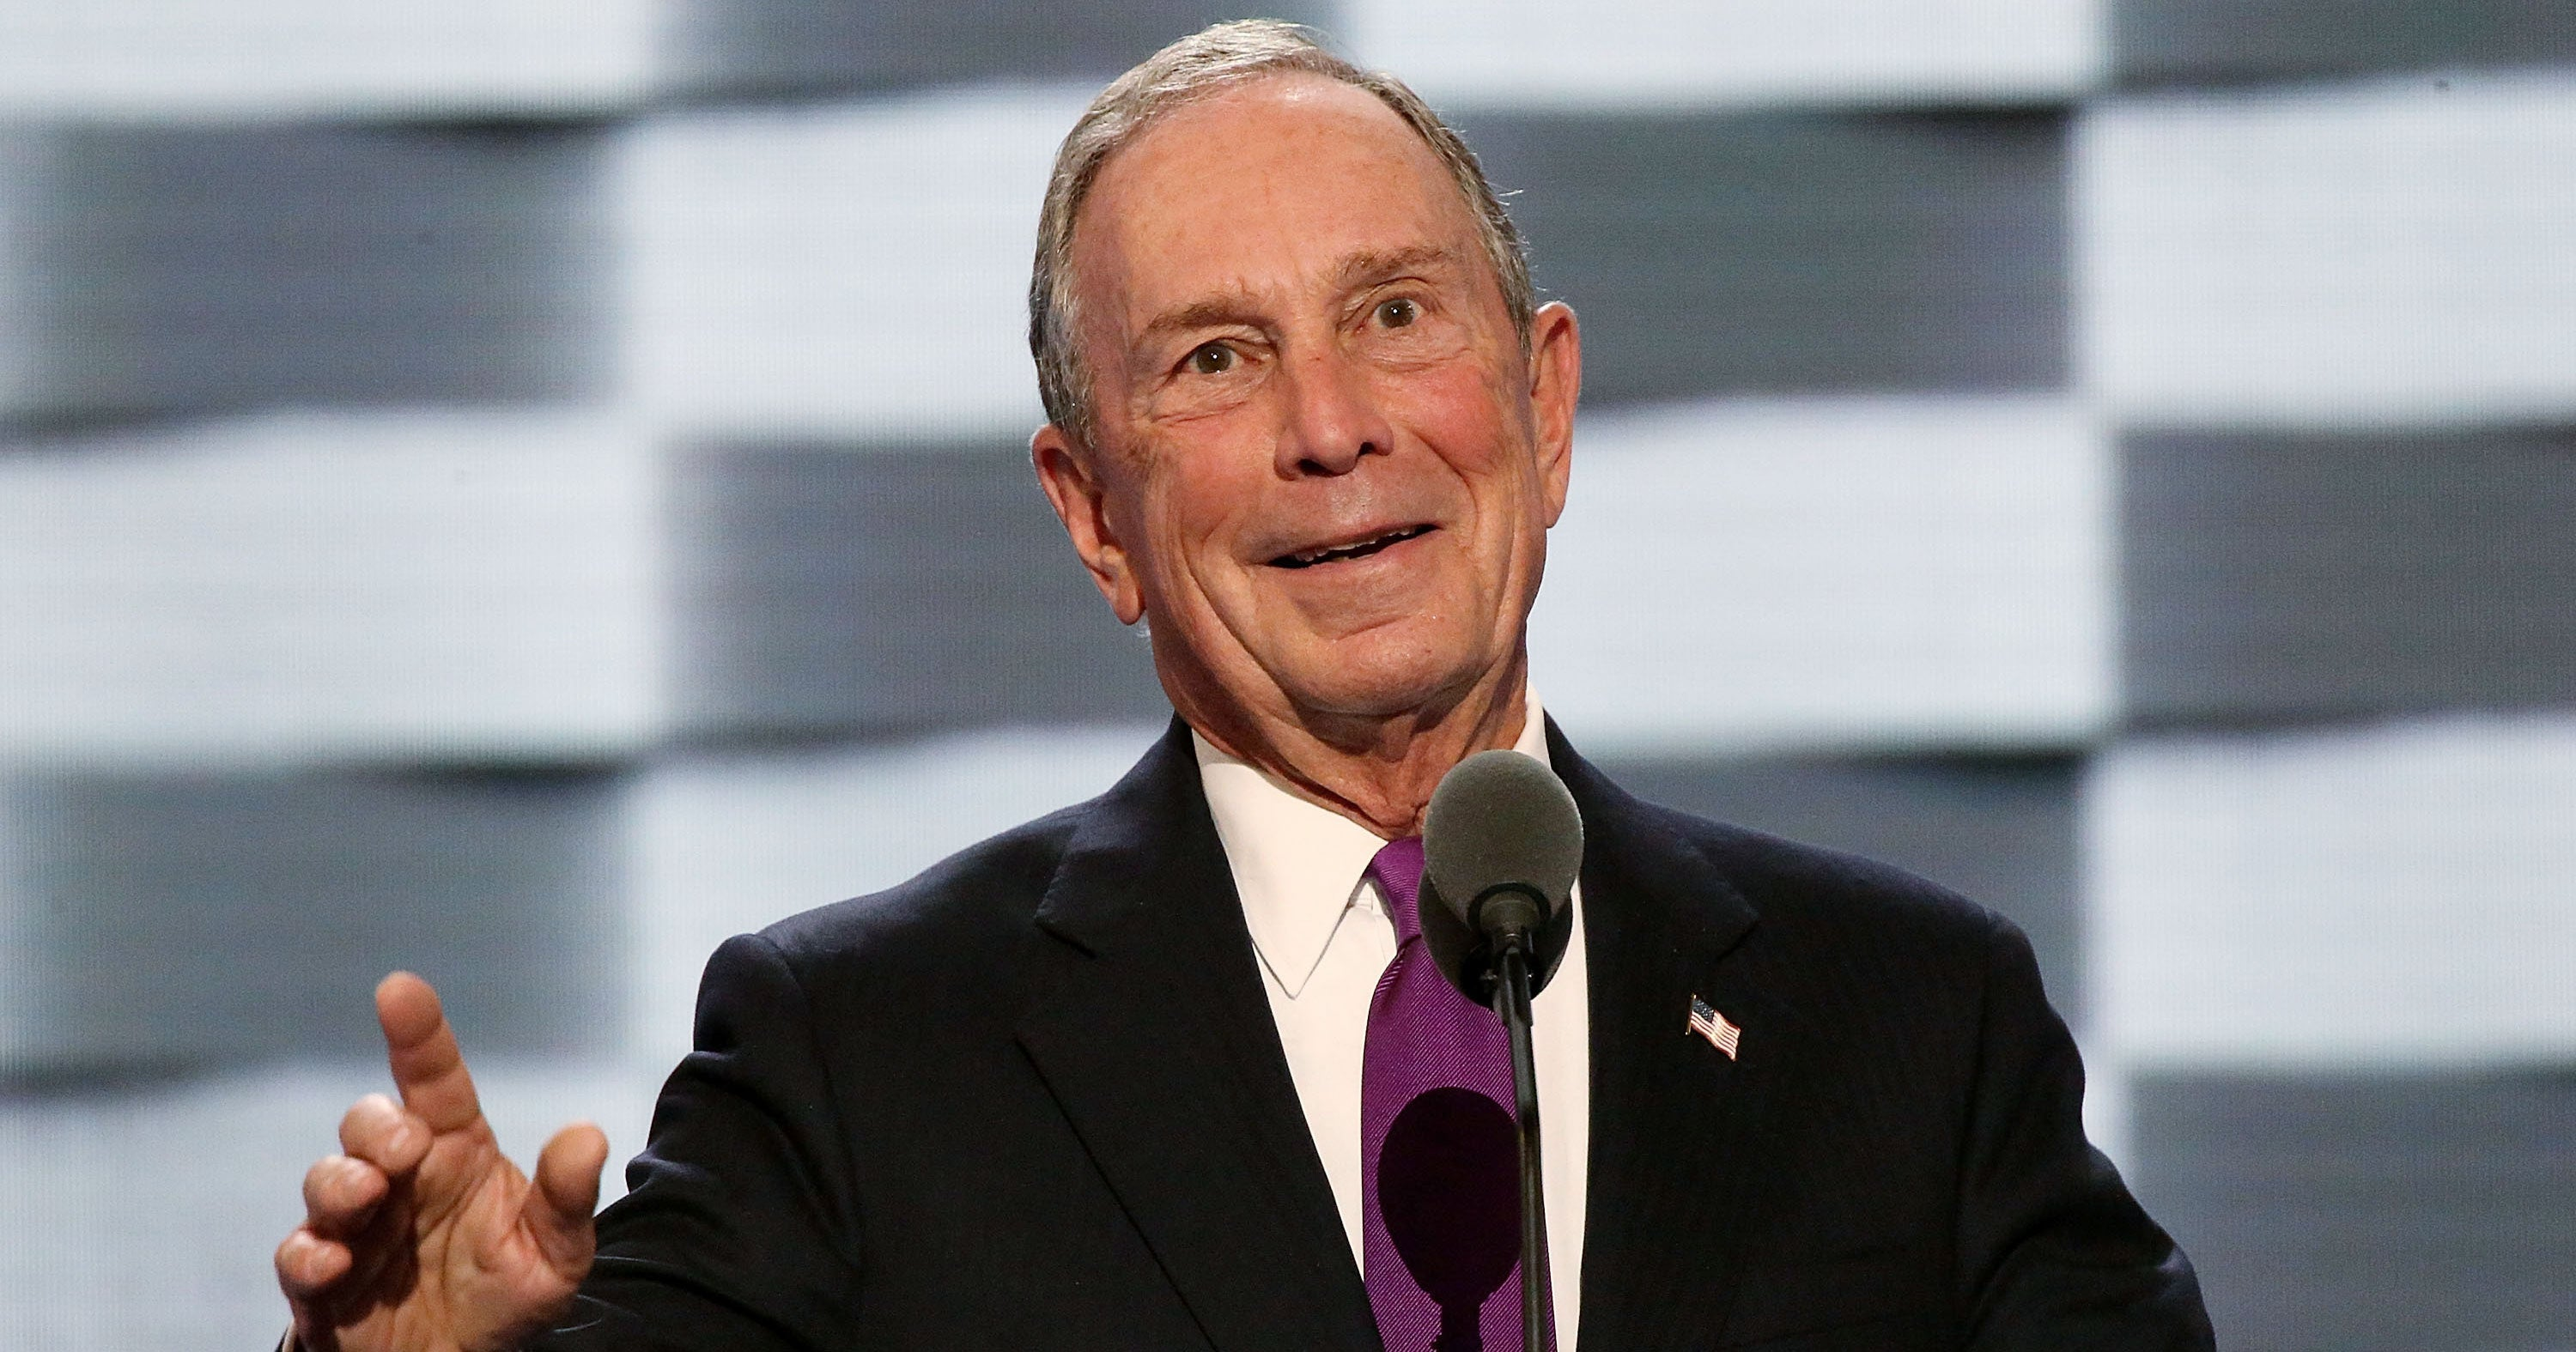 Mike Bloomberg Enters Debate With History Under Fire